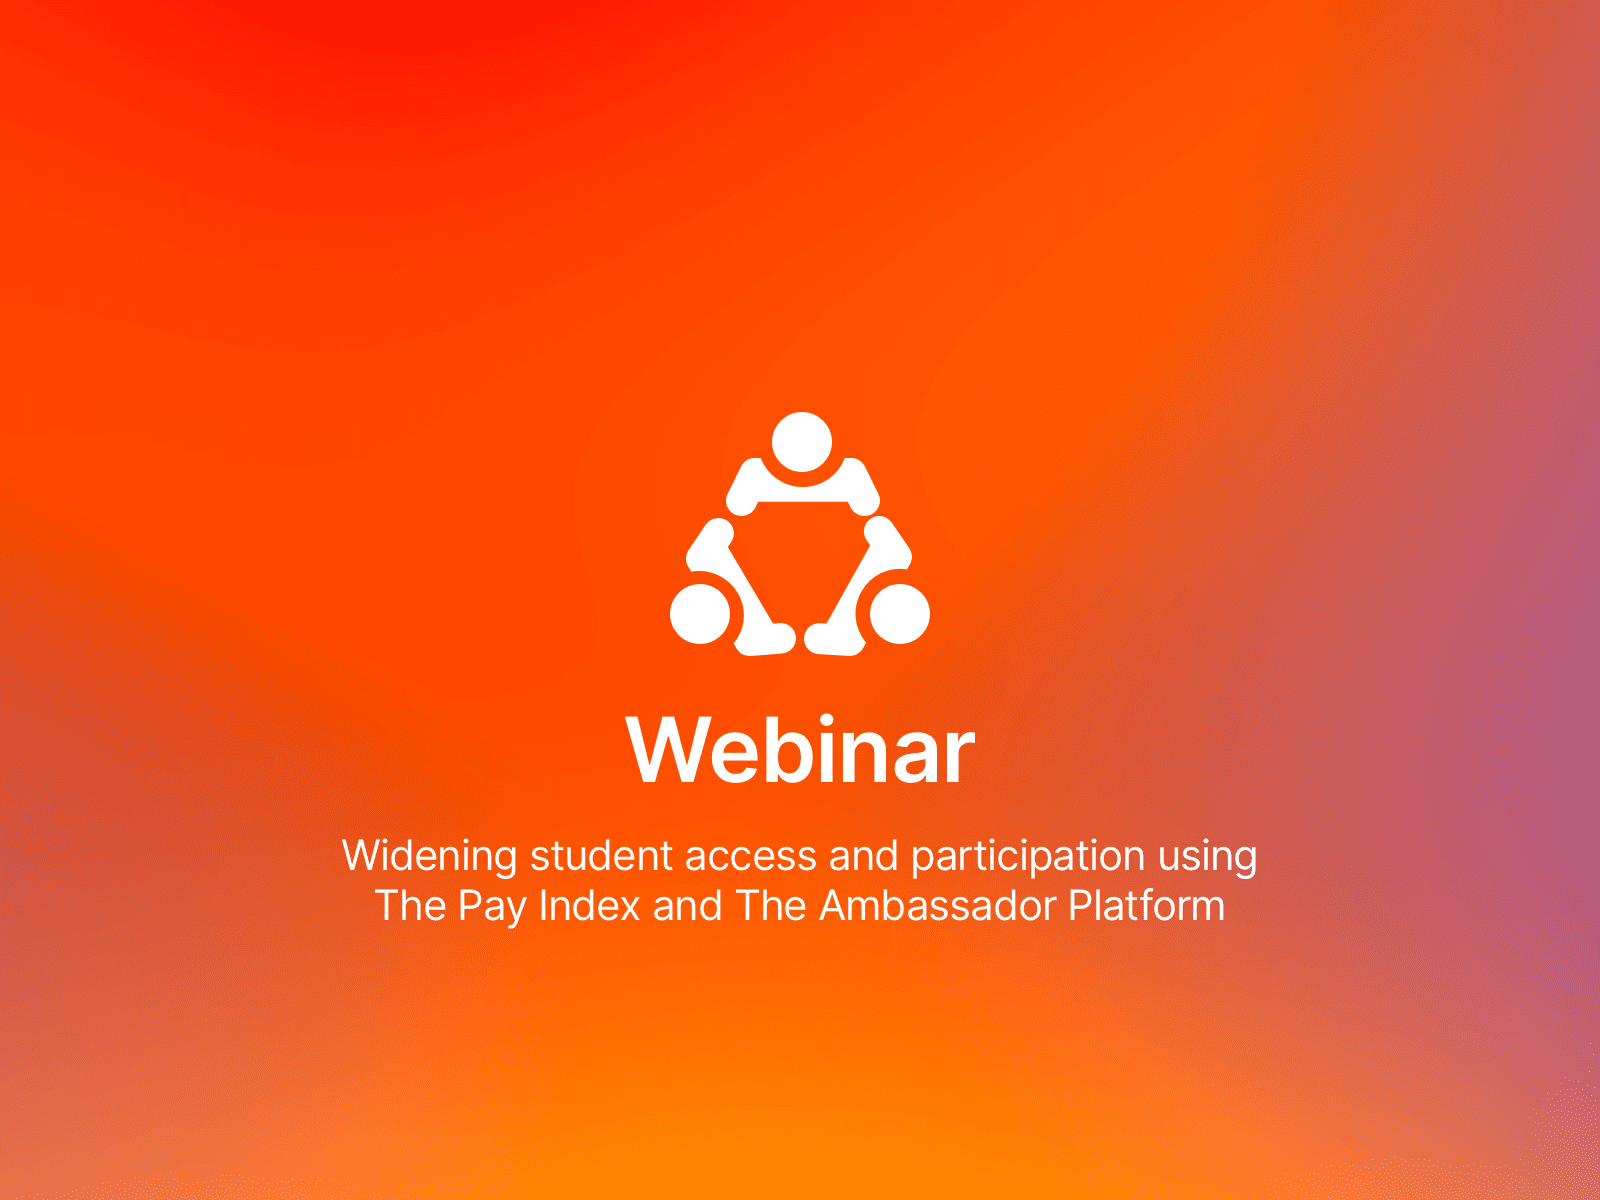 TAP webinar: Widening student access and participation